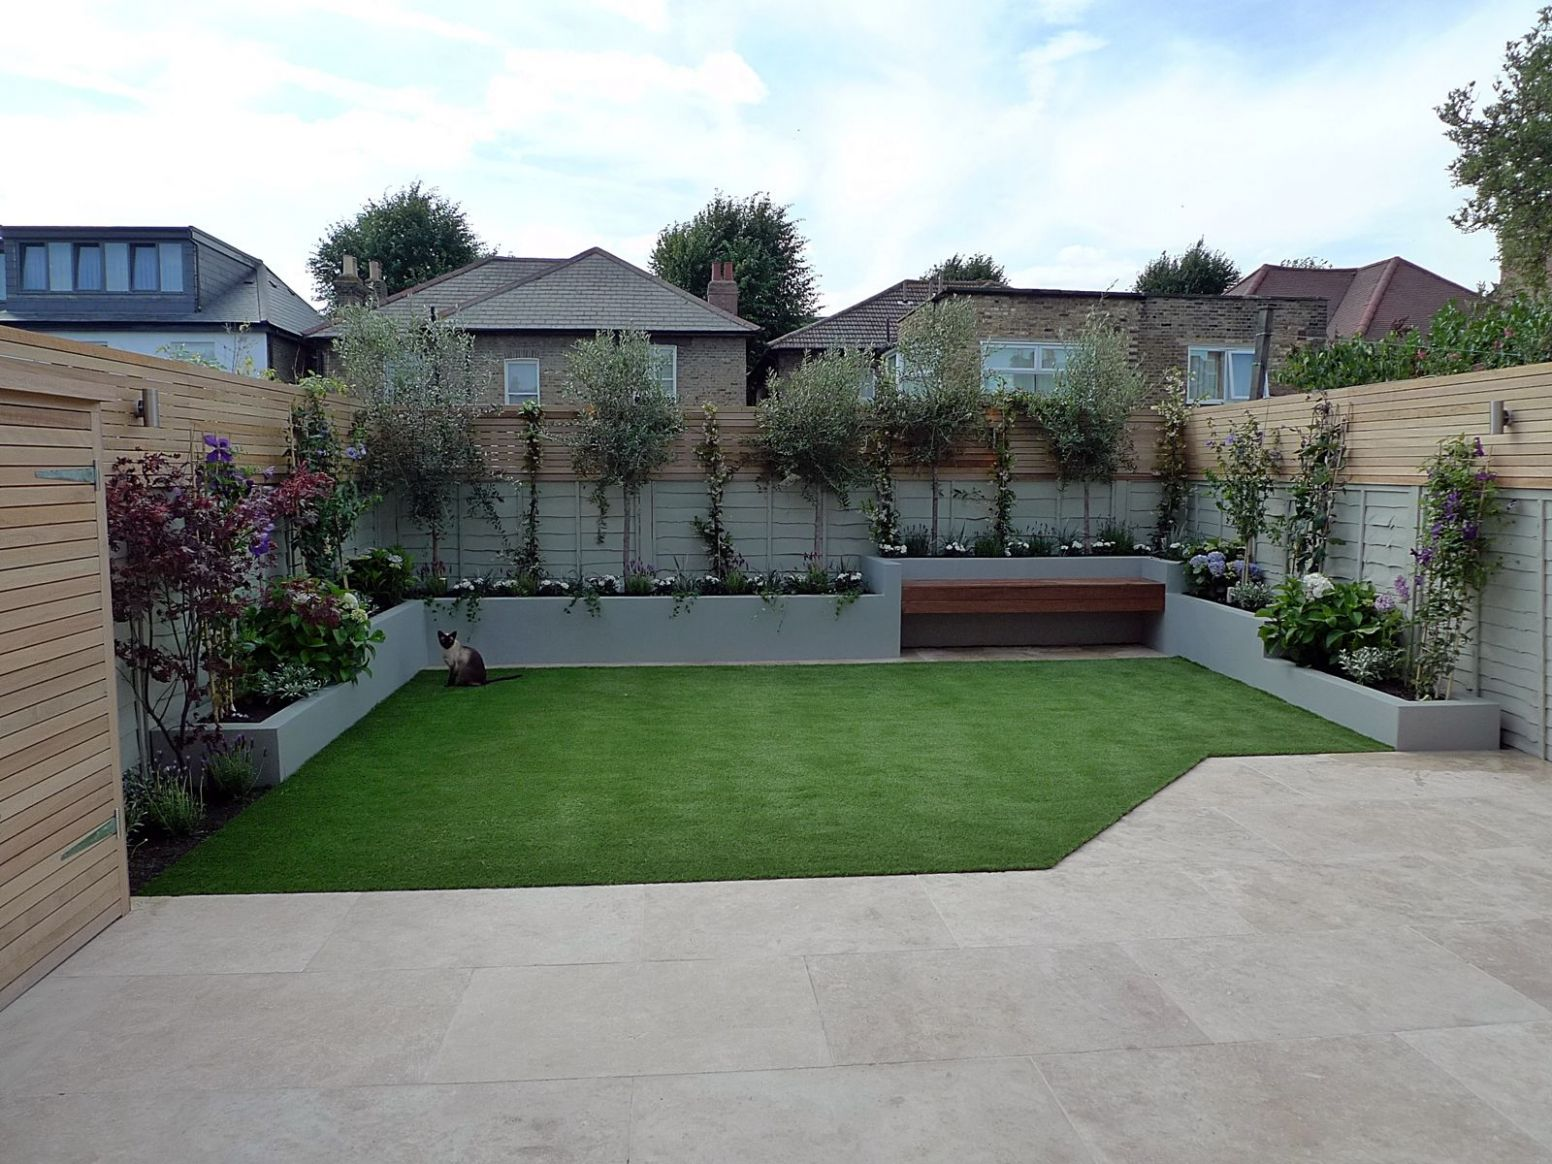 √ 12+ Best Minimalist Garden Design Ideas [Images] | Small garden ..